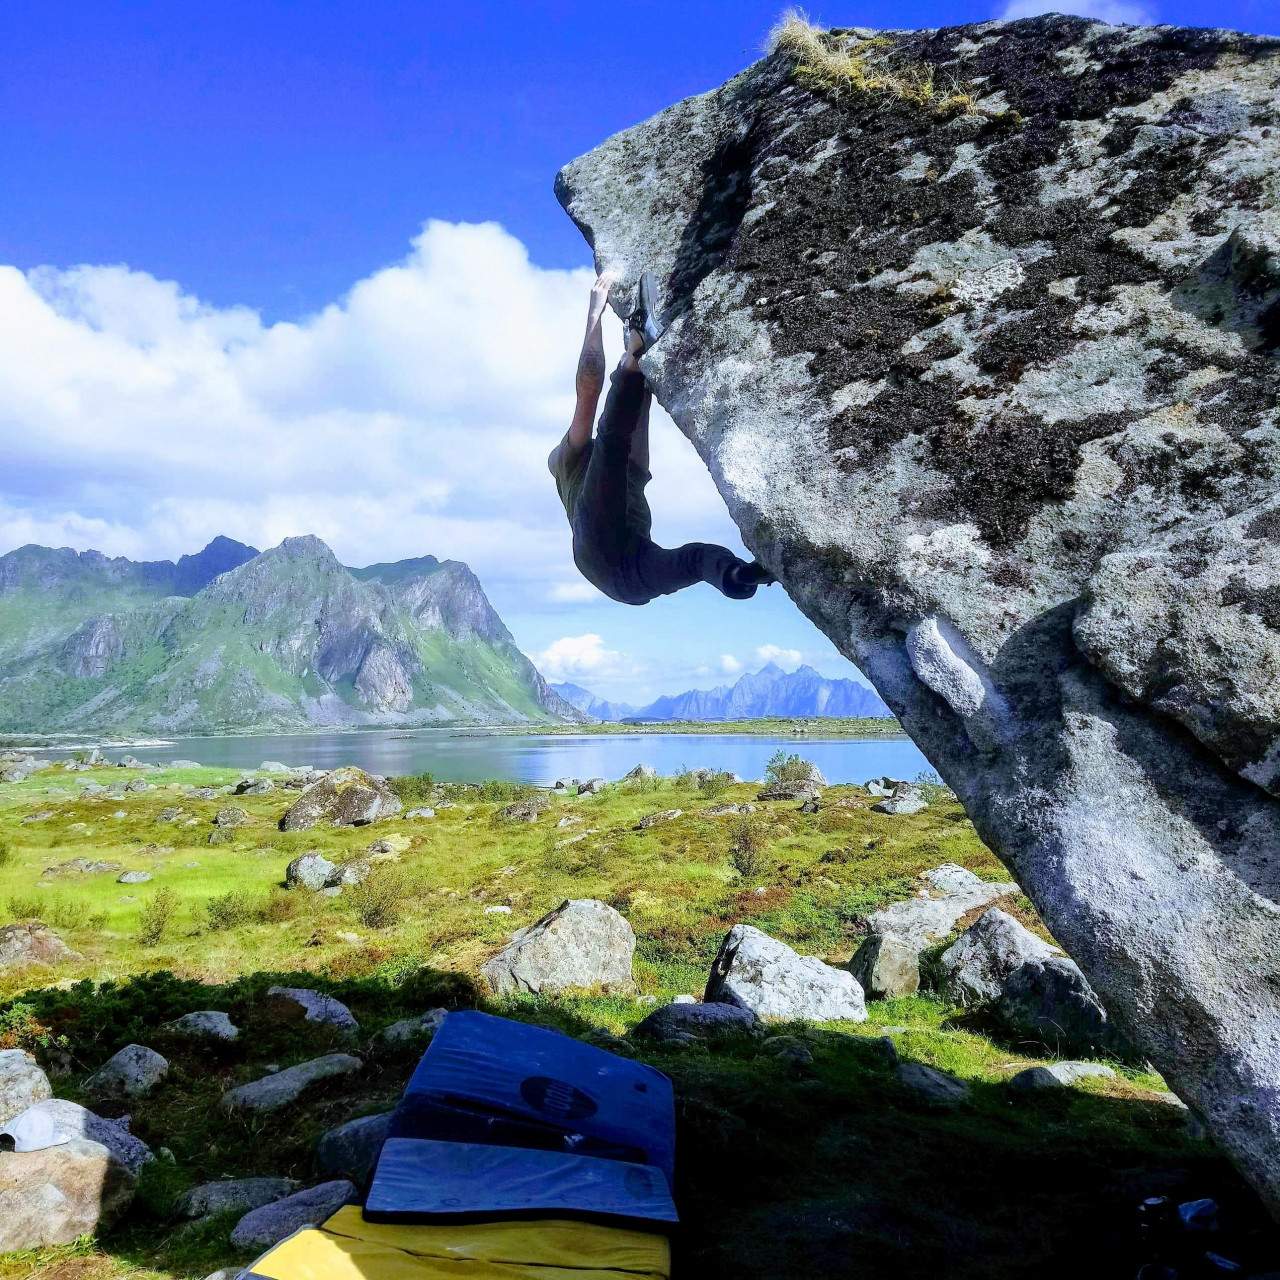 A picture from Lofoten Islands by Sim Sim